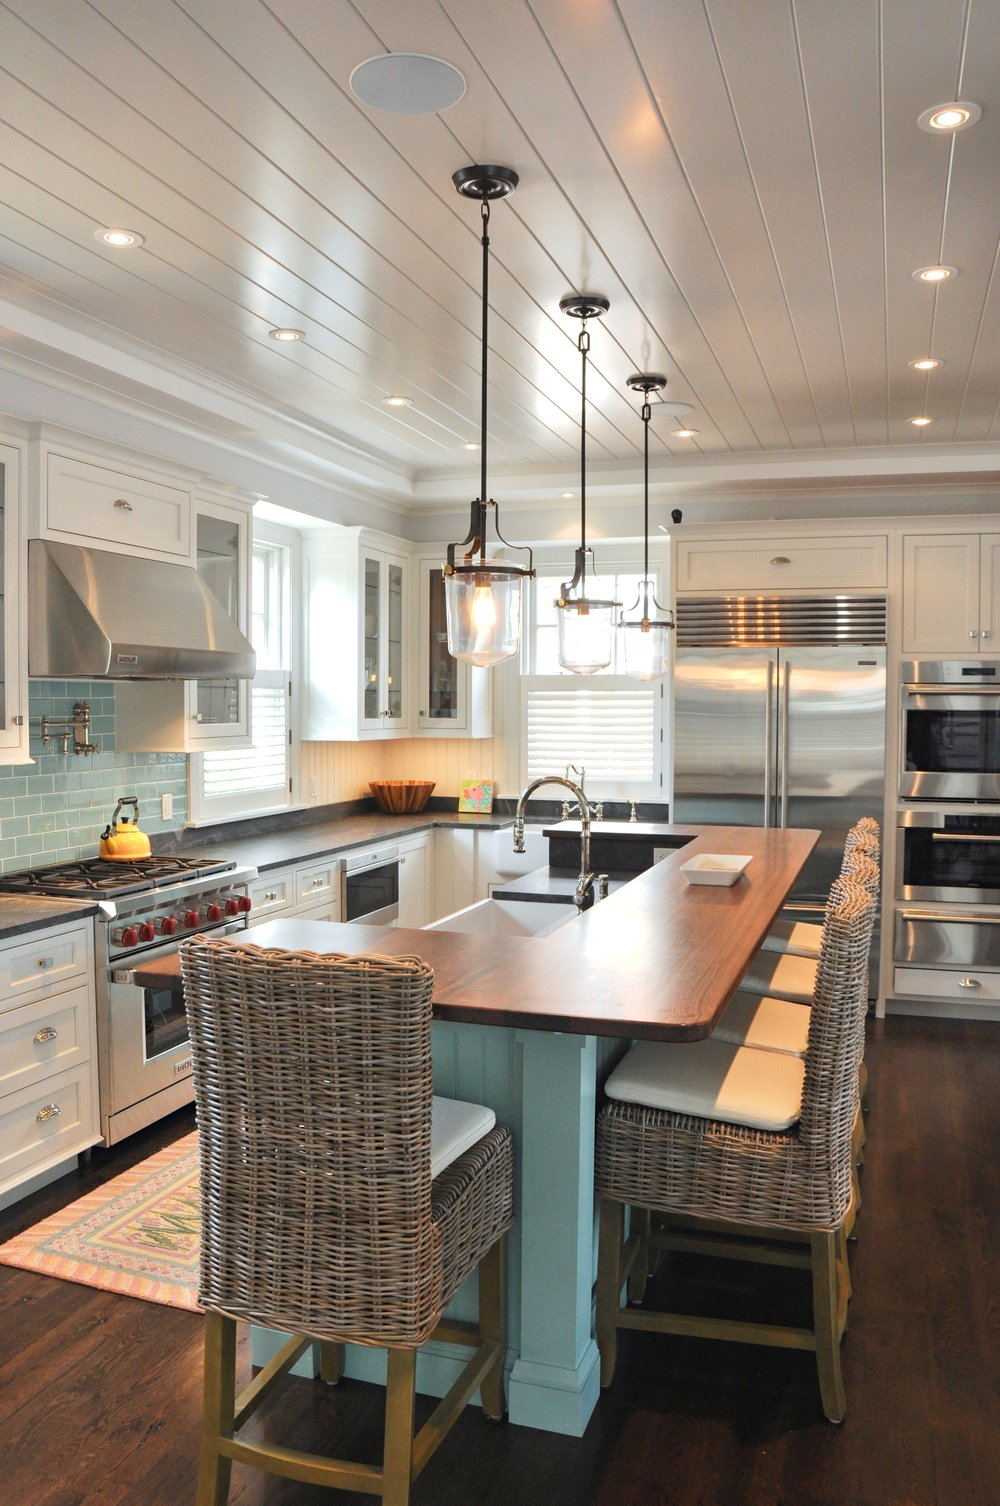 Modern_Turqoise_Teal_Kitchen_Island_Two_Toned_Cabinets.jpg